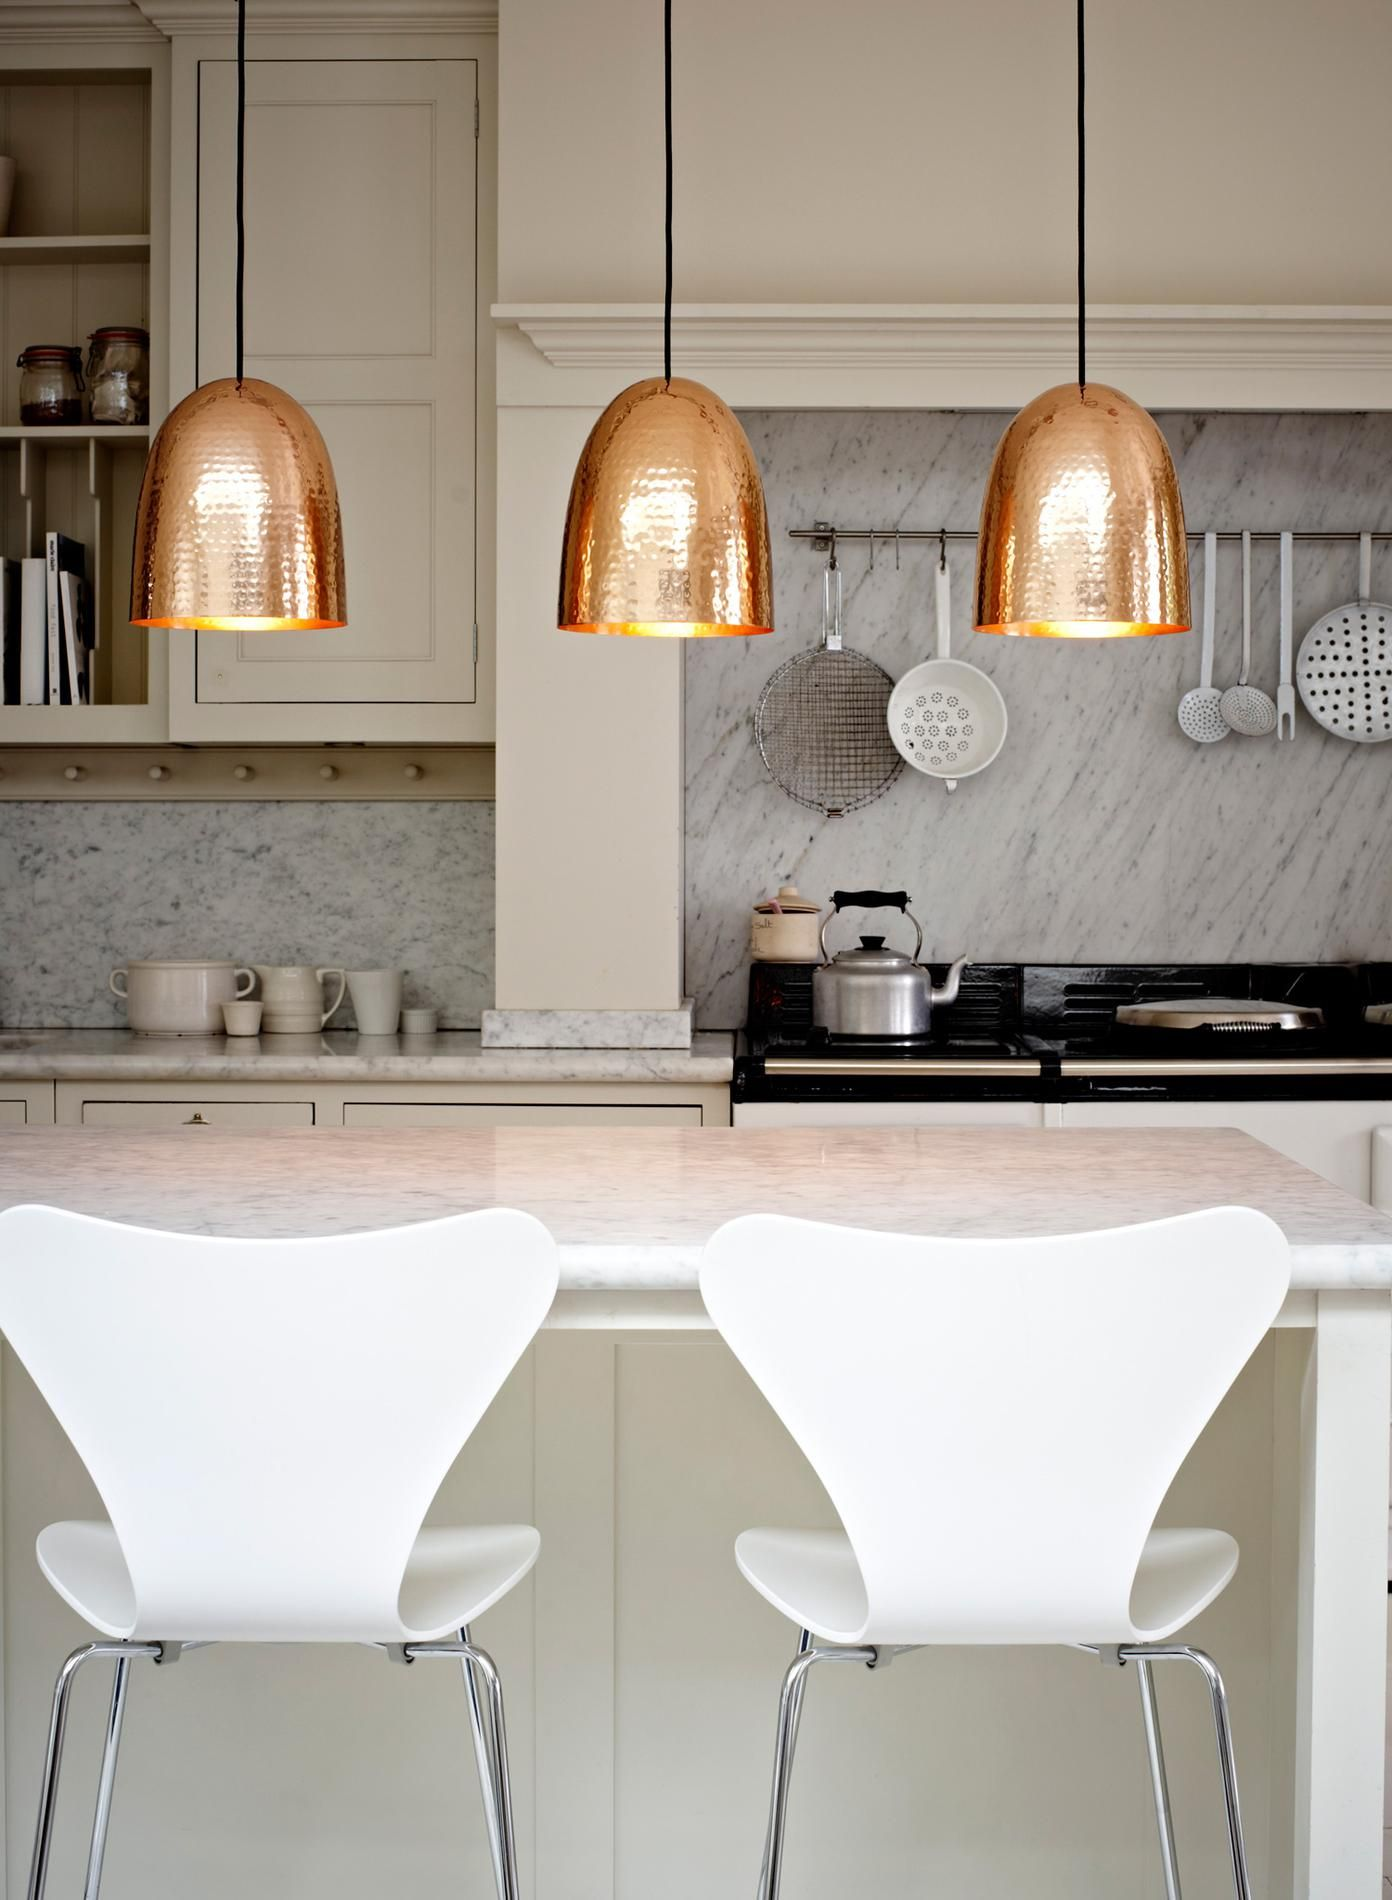 Examples Of Copper Pendant Lighting For Your Home - Pendant lights for kitchen breakfast bar